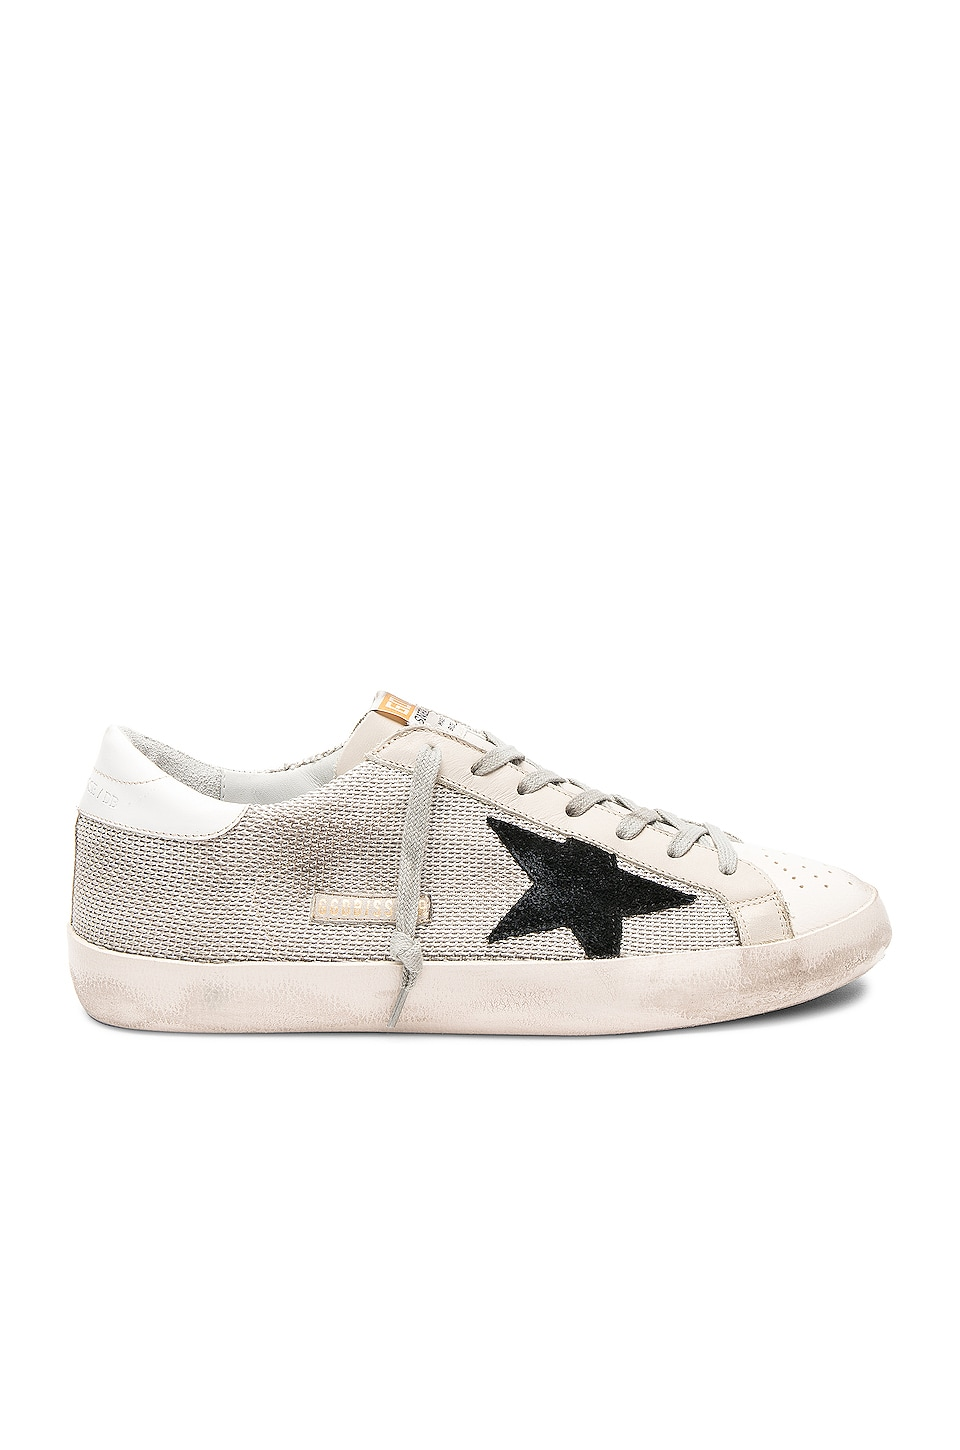 Golden Goose ZAPATILLAS DEPORTIVAS SUPERSTAR